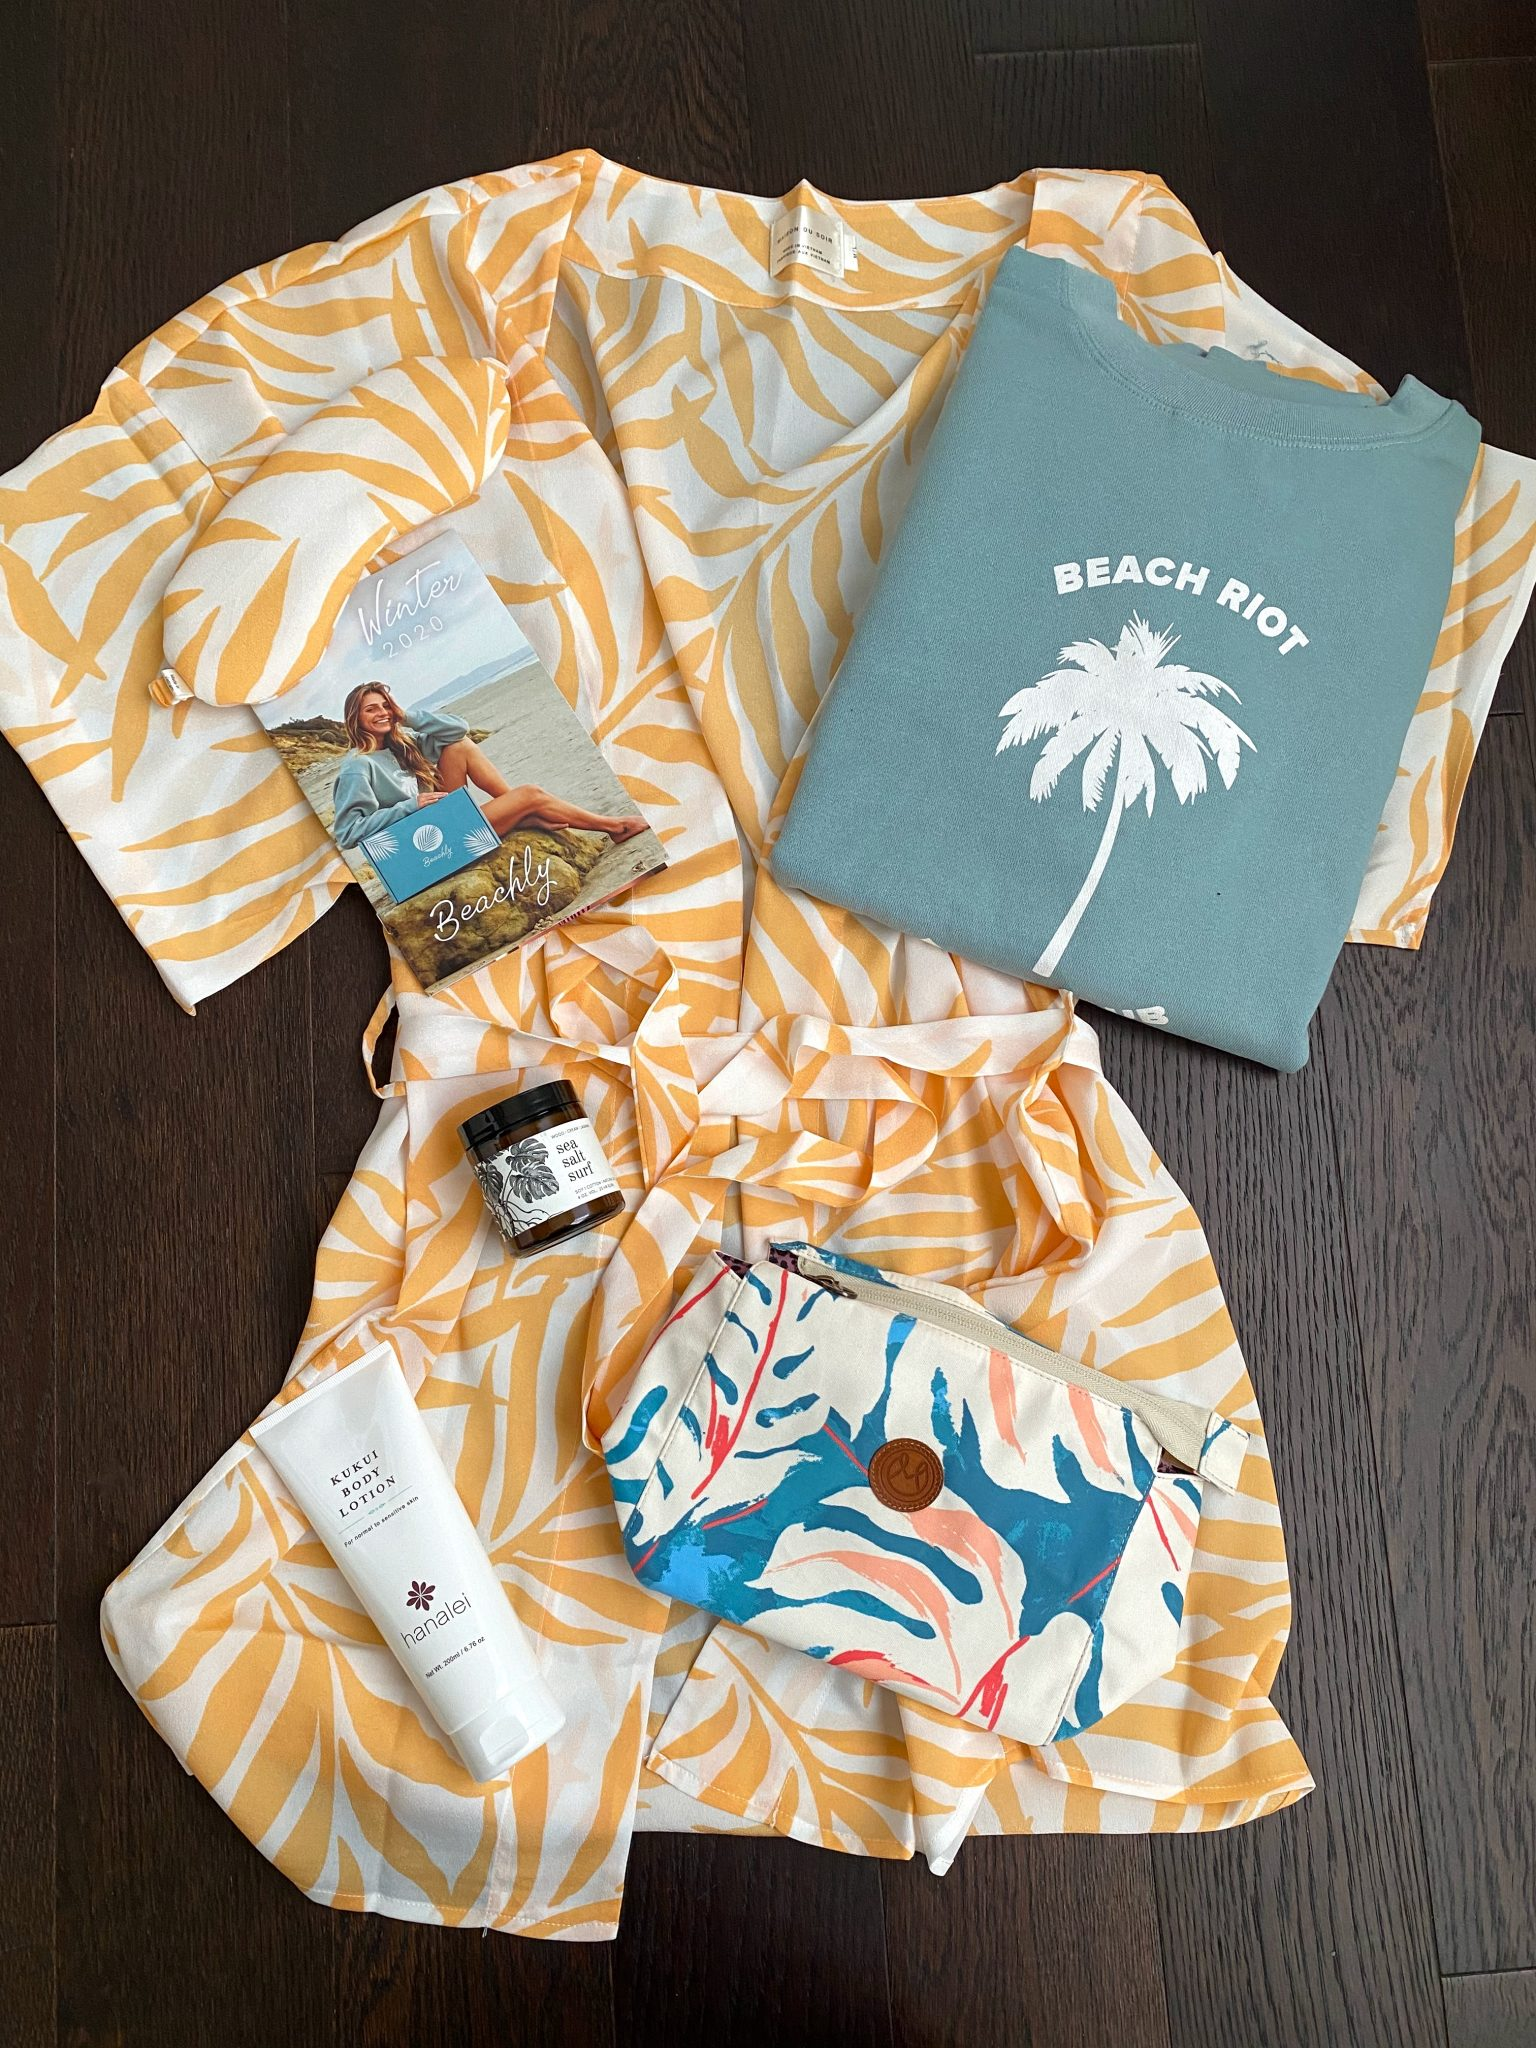 Beachly Review + Coupon Code – Winter 2020